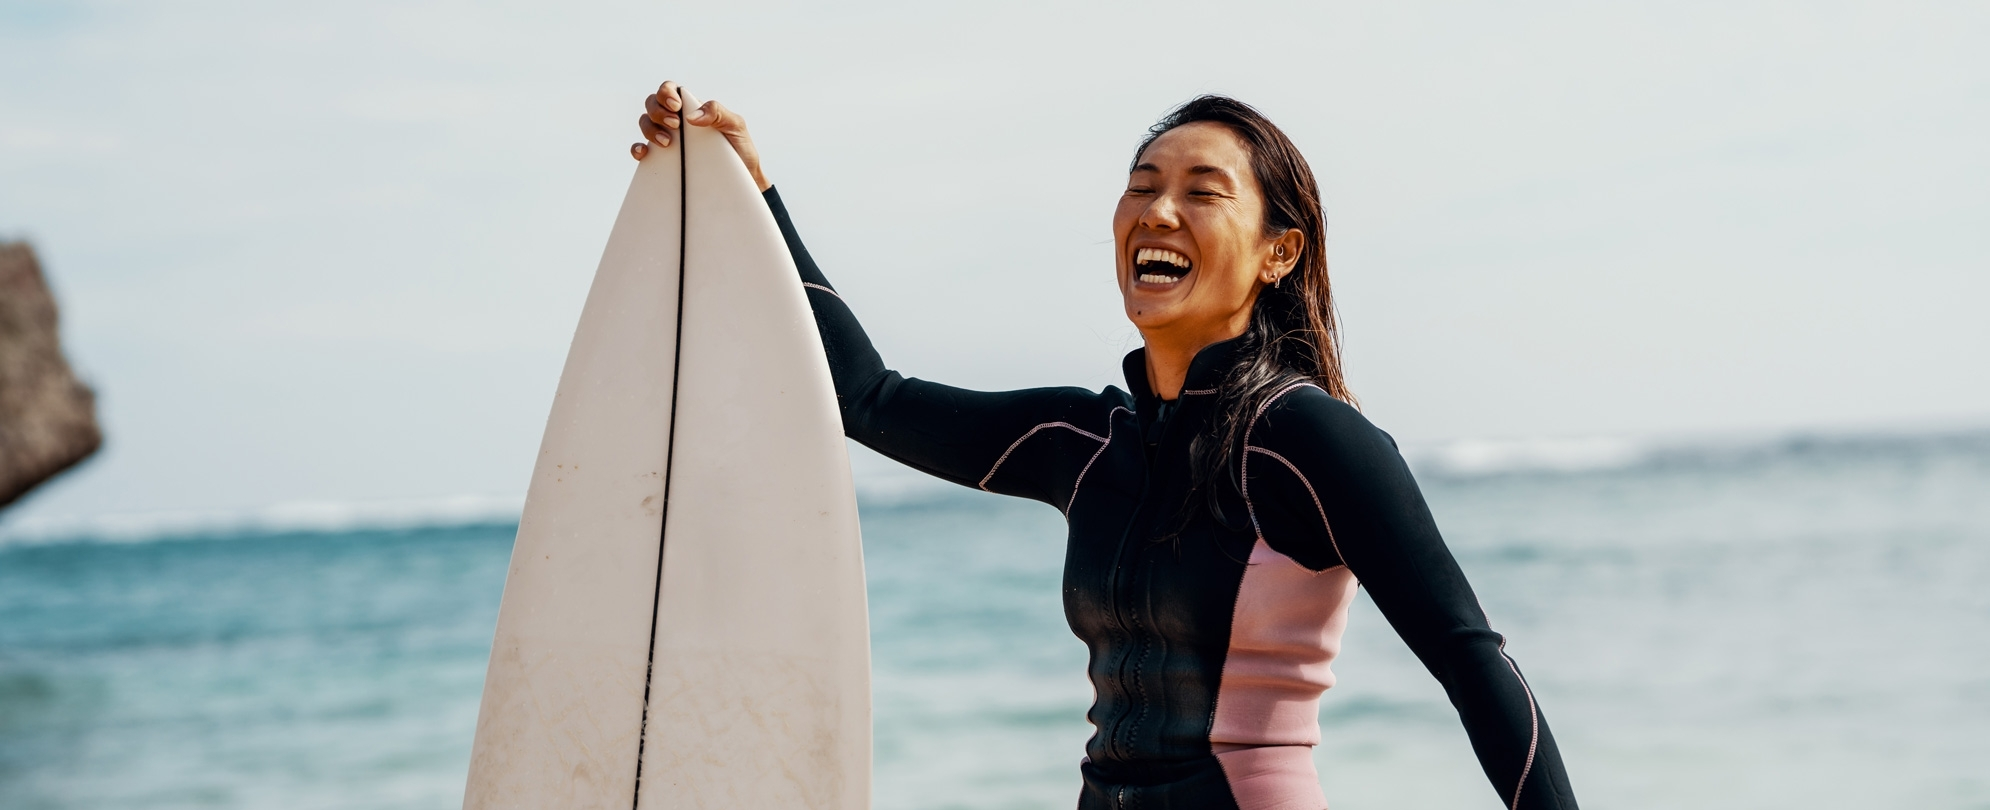 Excited woman in a wetsuit holding surfboard on the beach